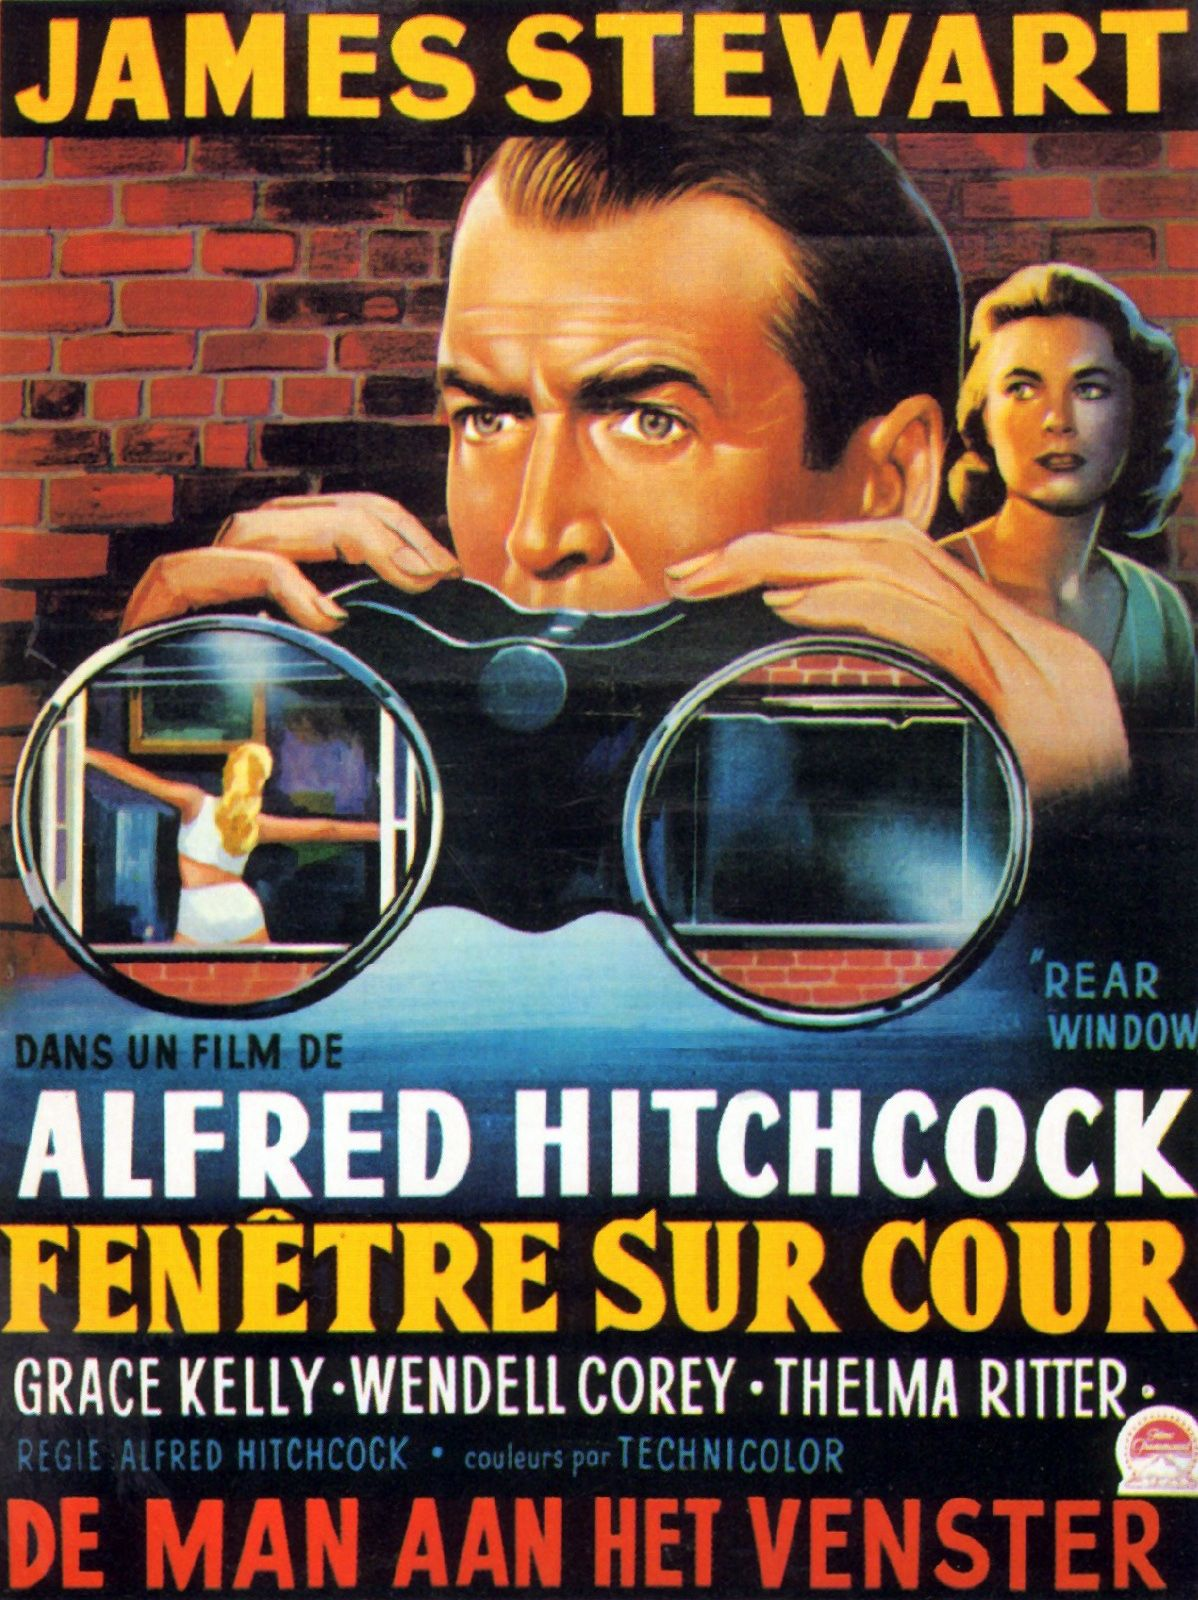 best images about posters from awesome films i love to watch 17 best images about posters from awesome films i love to watch and which you should too casablanca 1942 casablanca and the godfather part